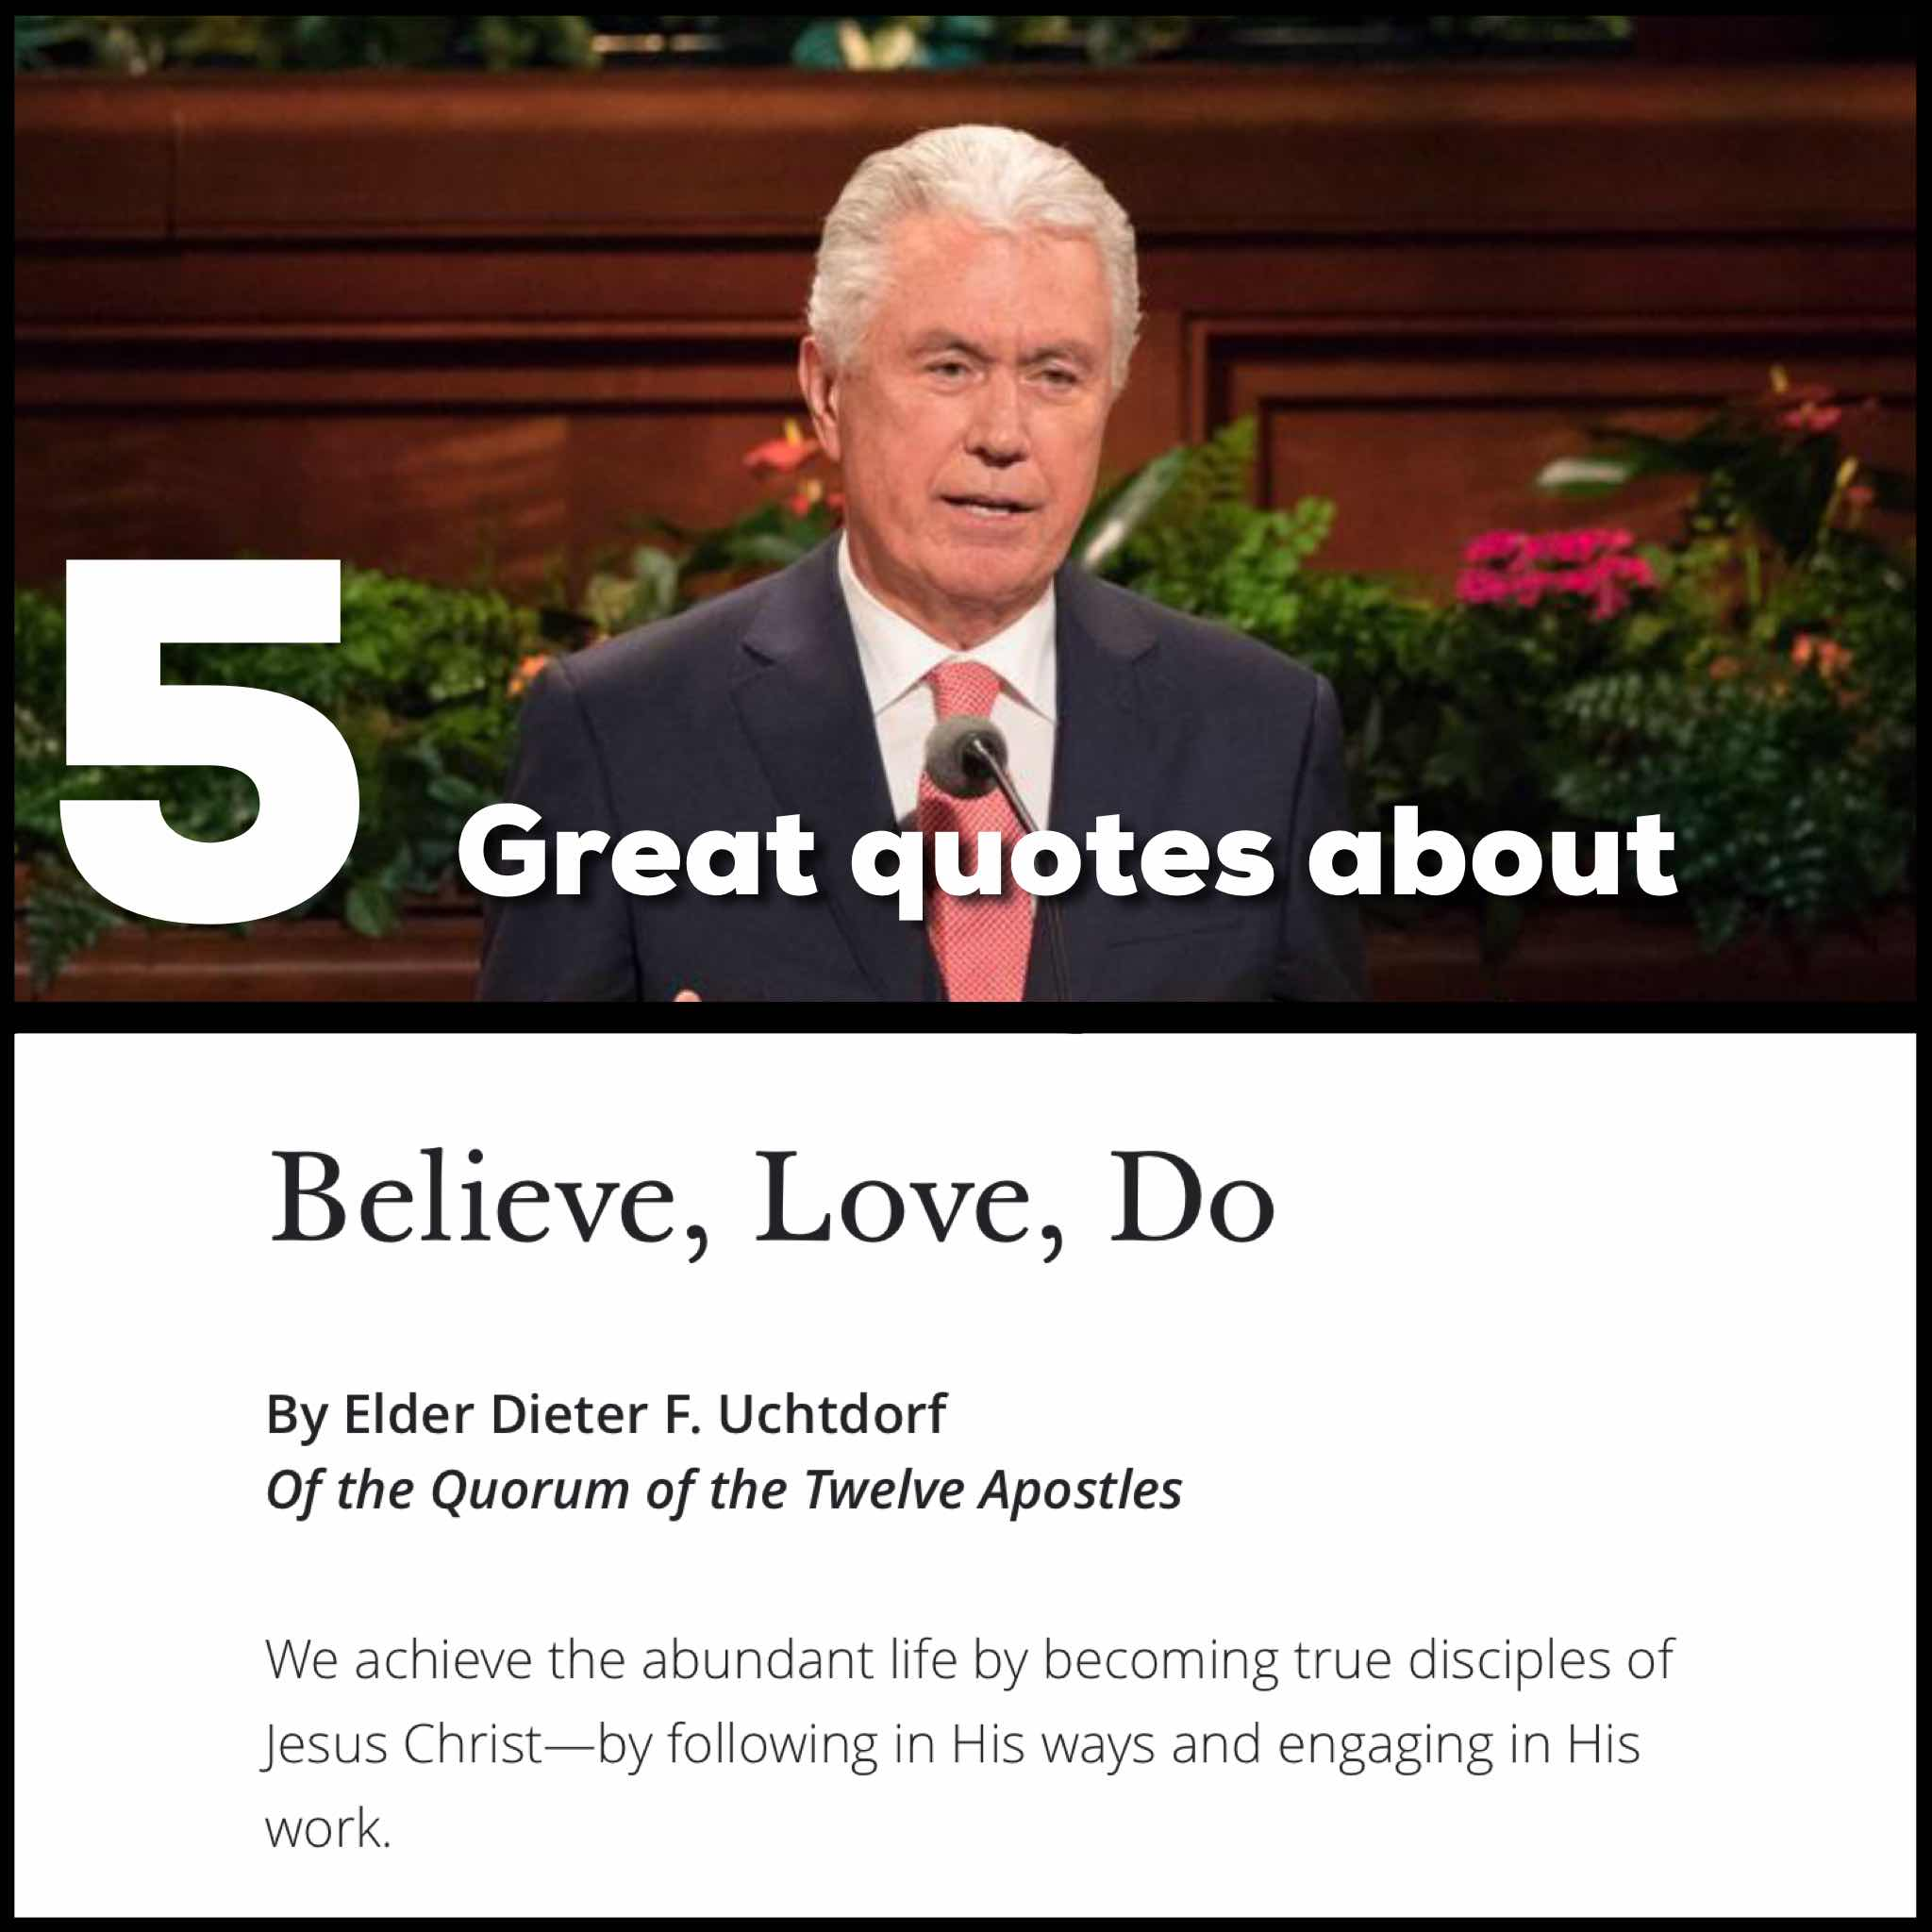 Alexa: 5 Great quotes about Believe, Love, Do by Elder Dieter F